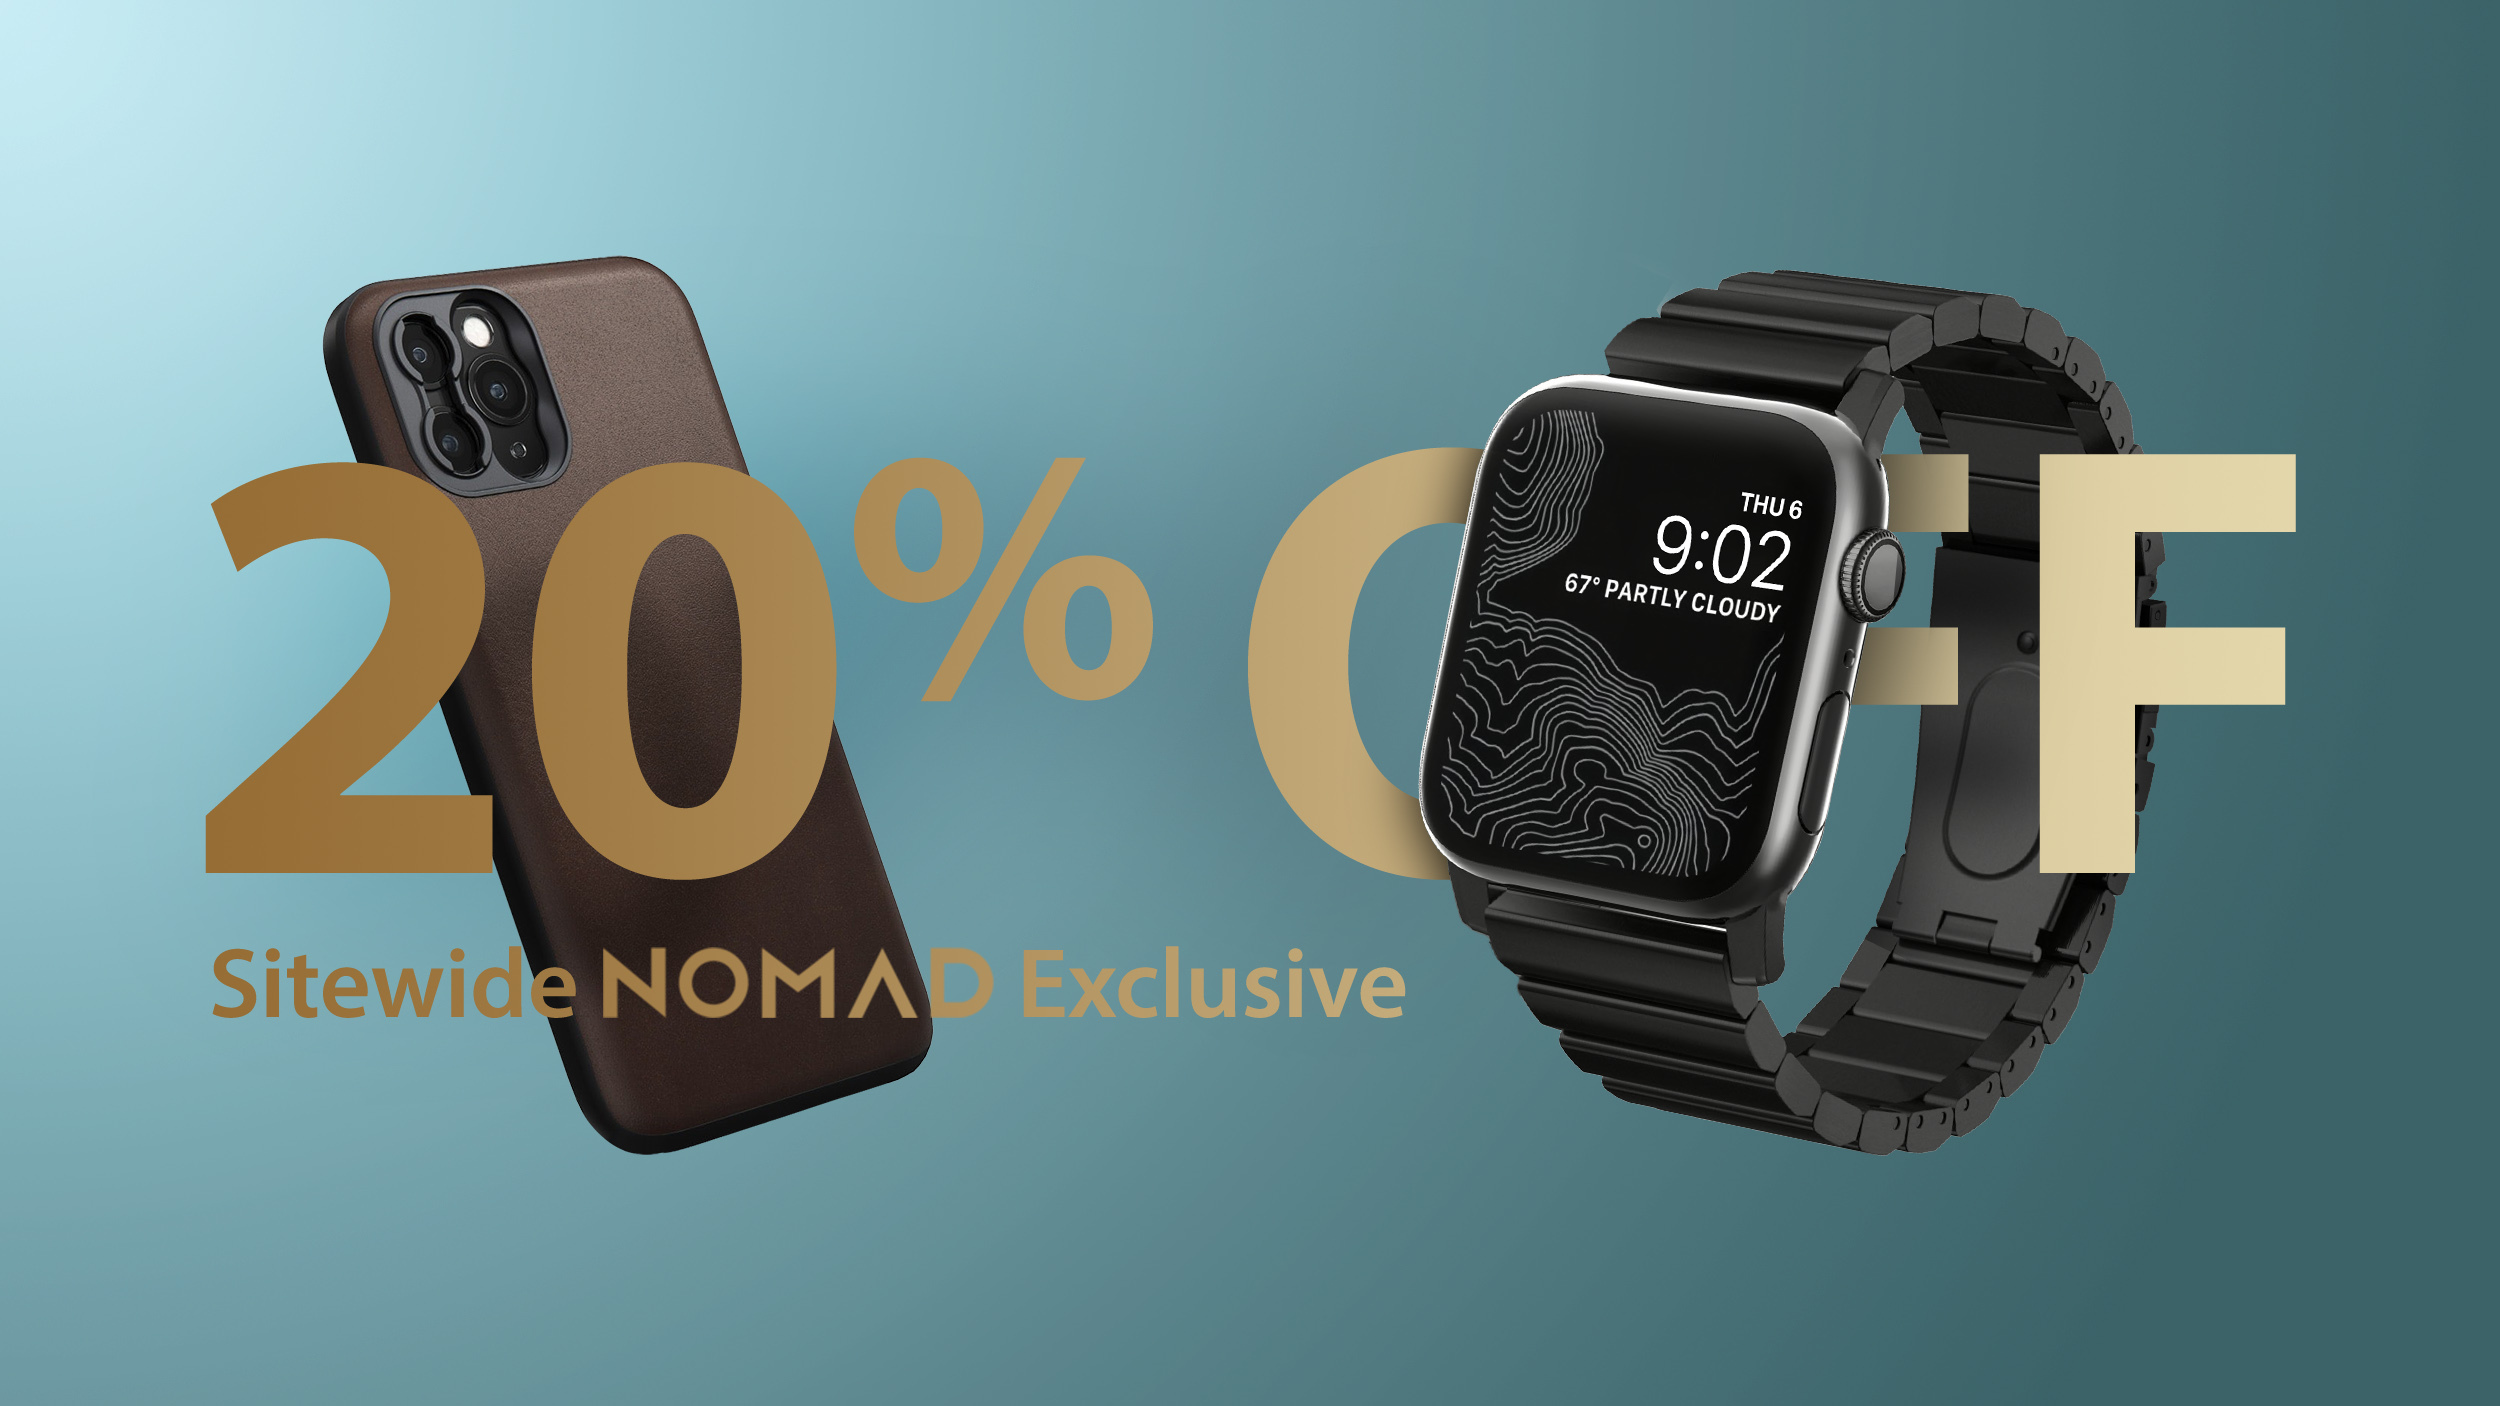 Exclusive Deals: Take 20% Off Sitewide at Nomad This Week